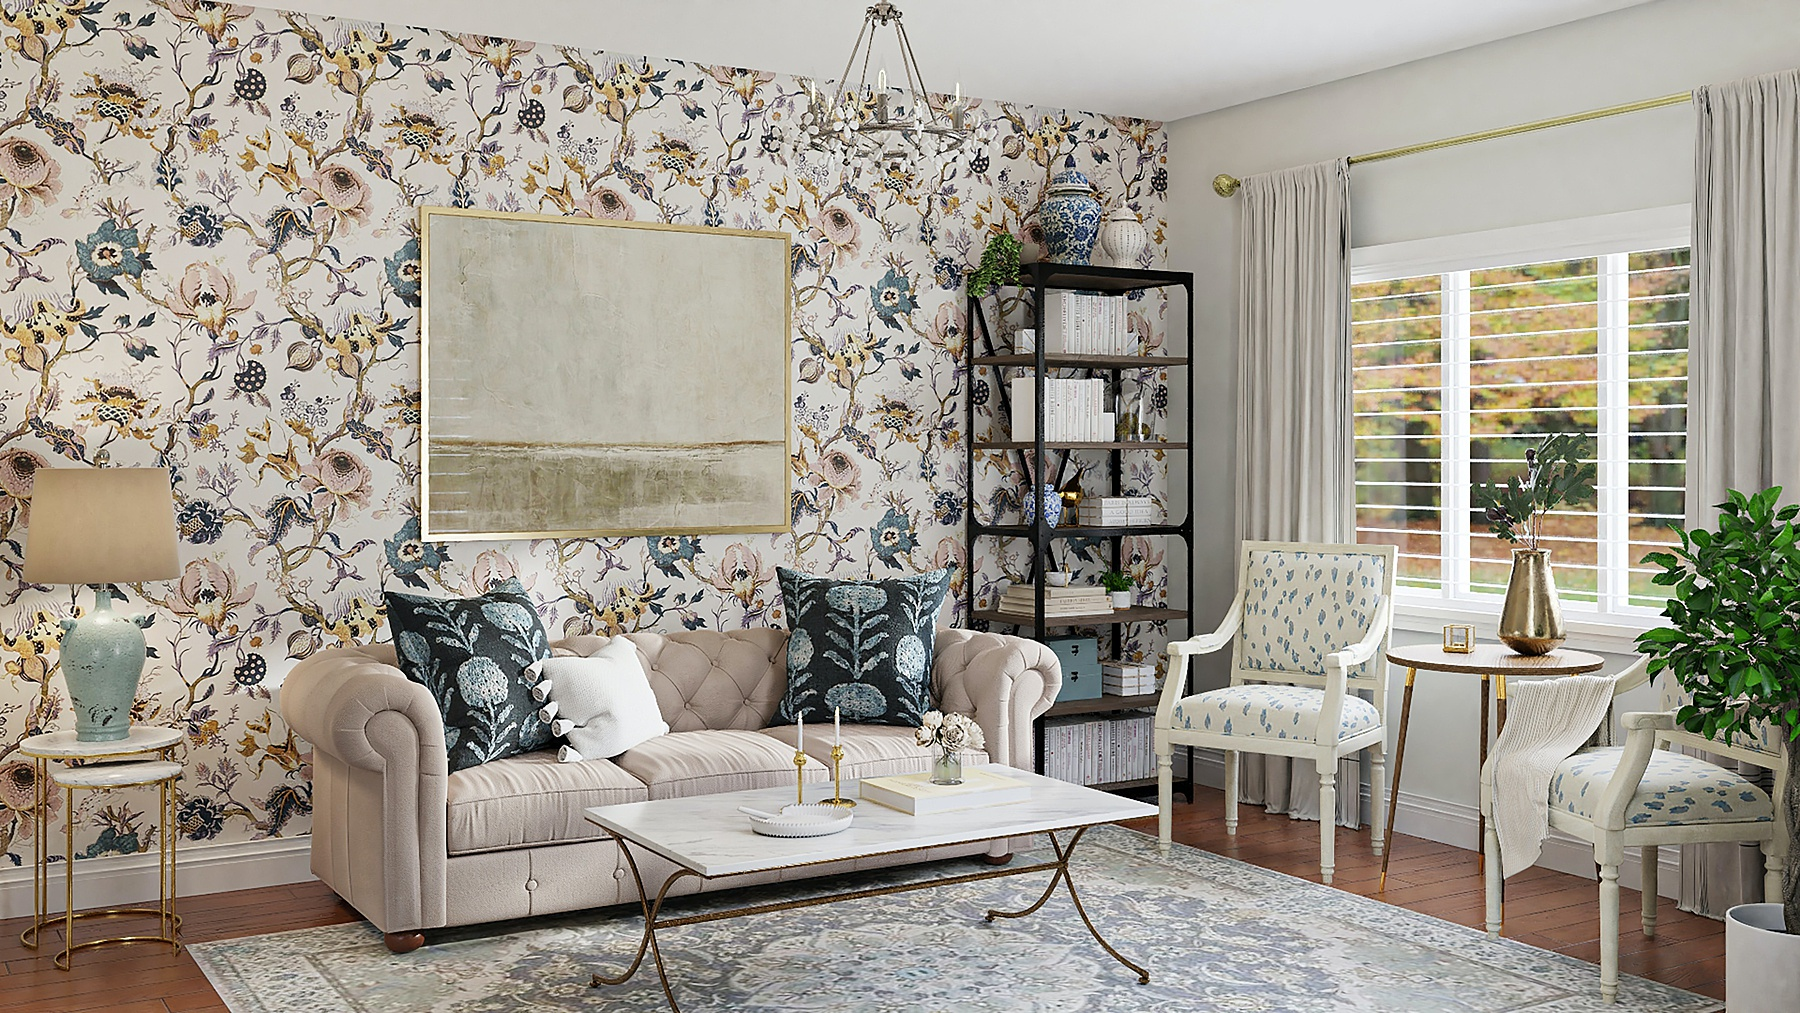 Living room decorated in current design trend Granny Chic or Grand Millennial